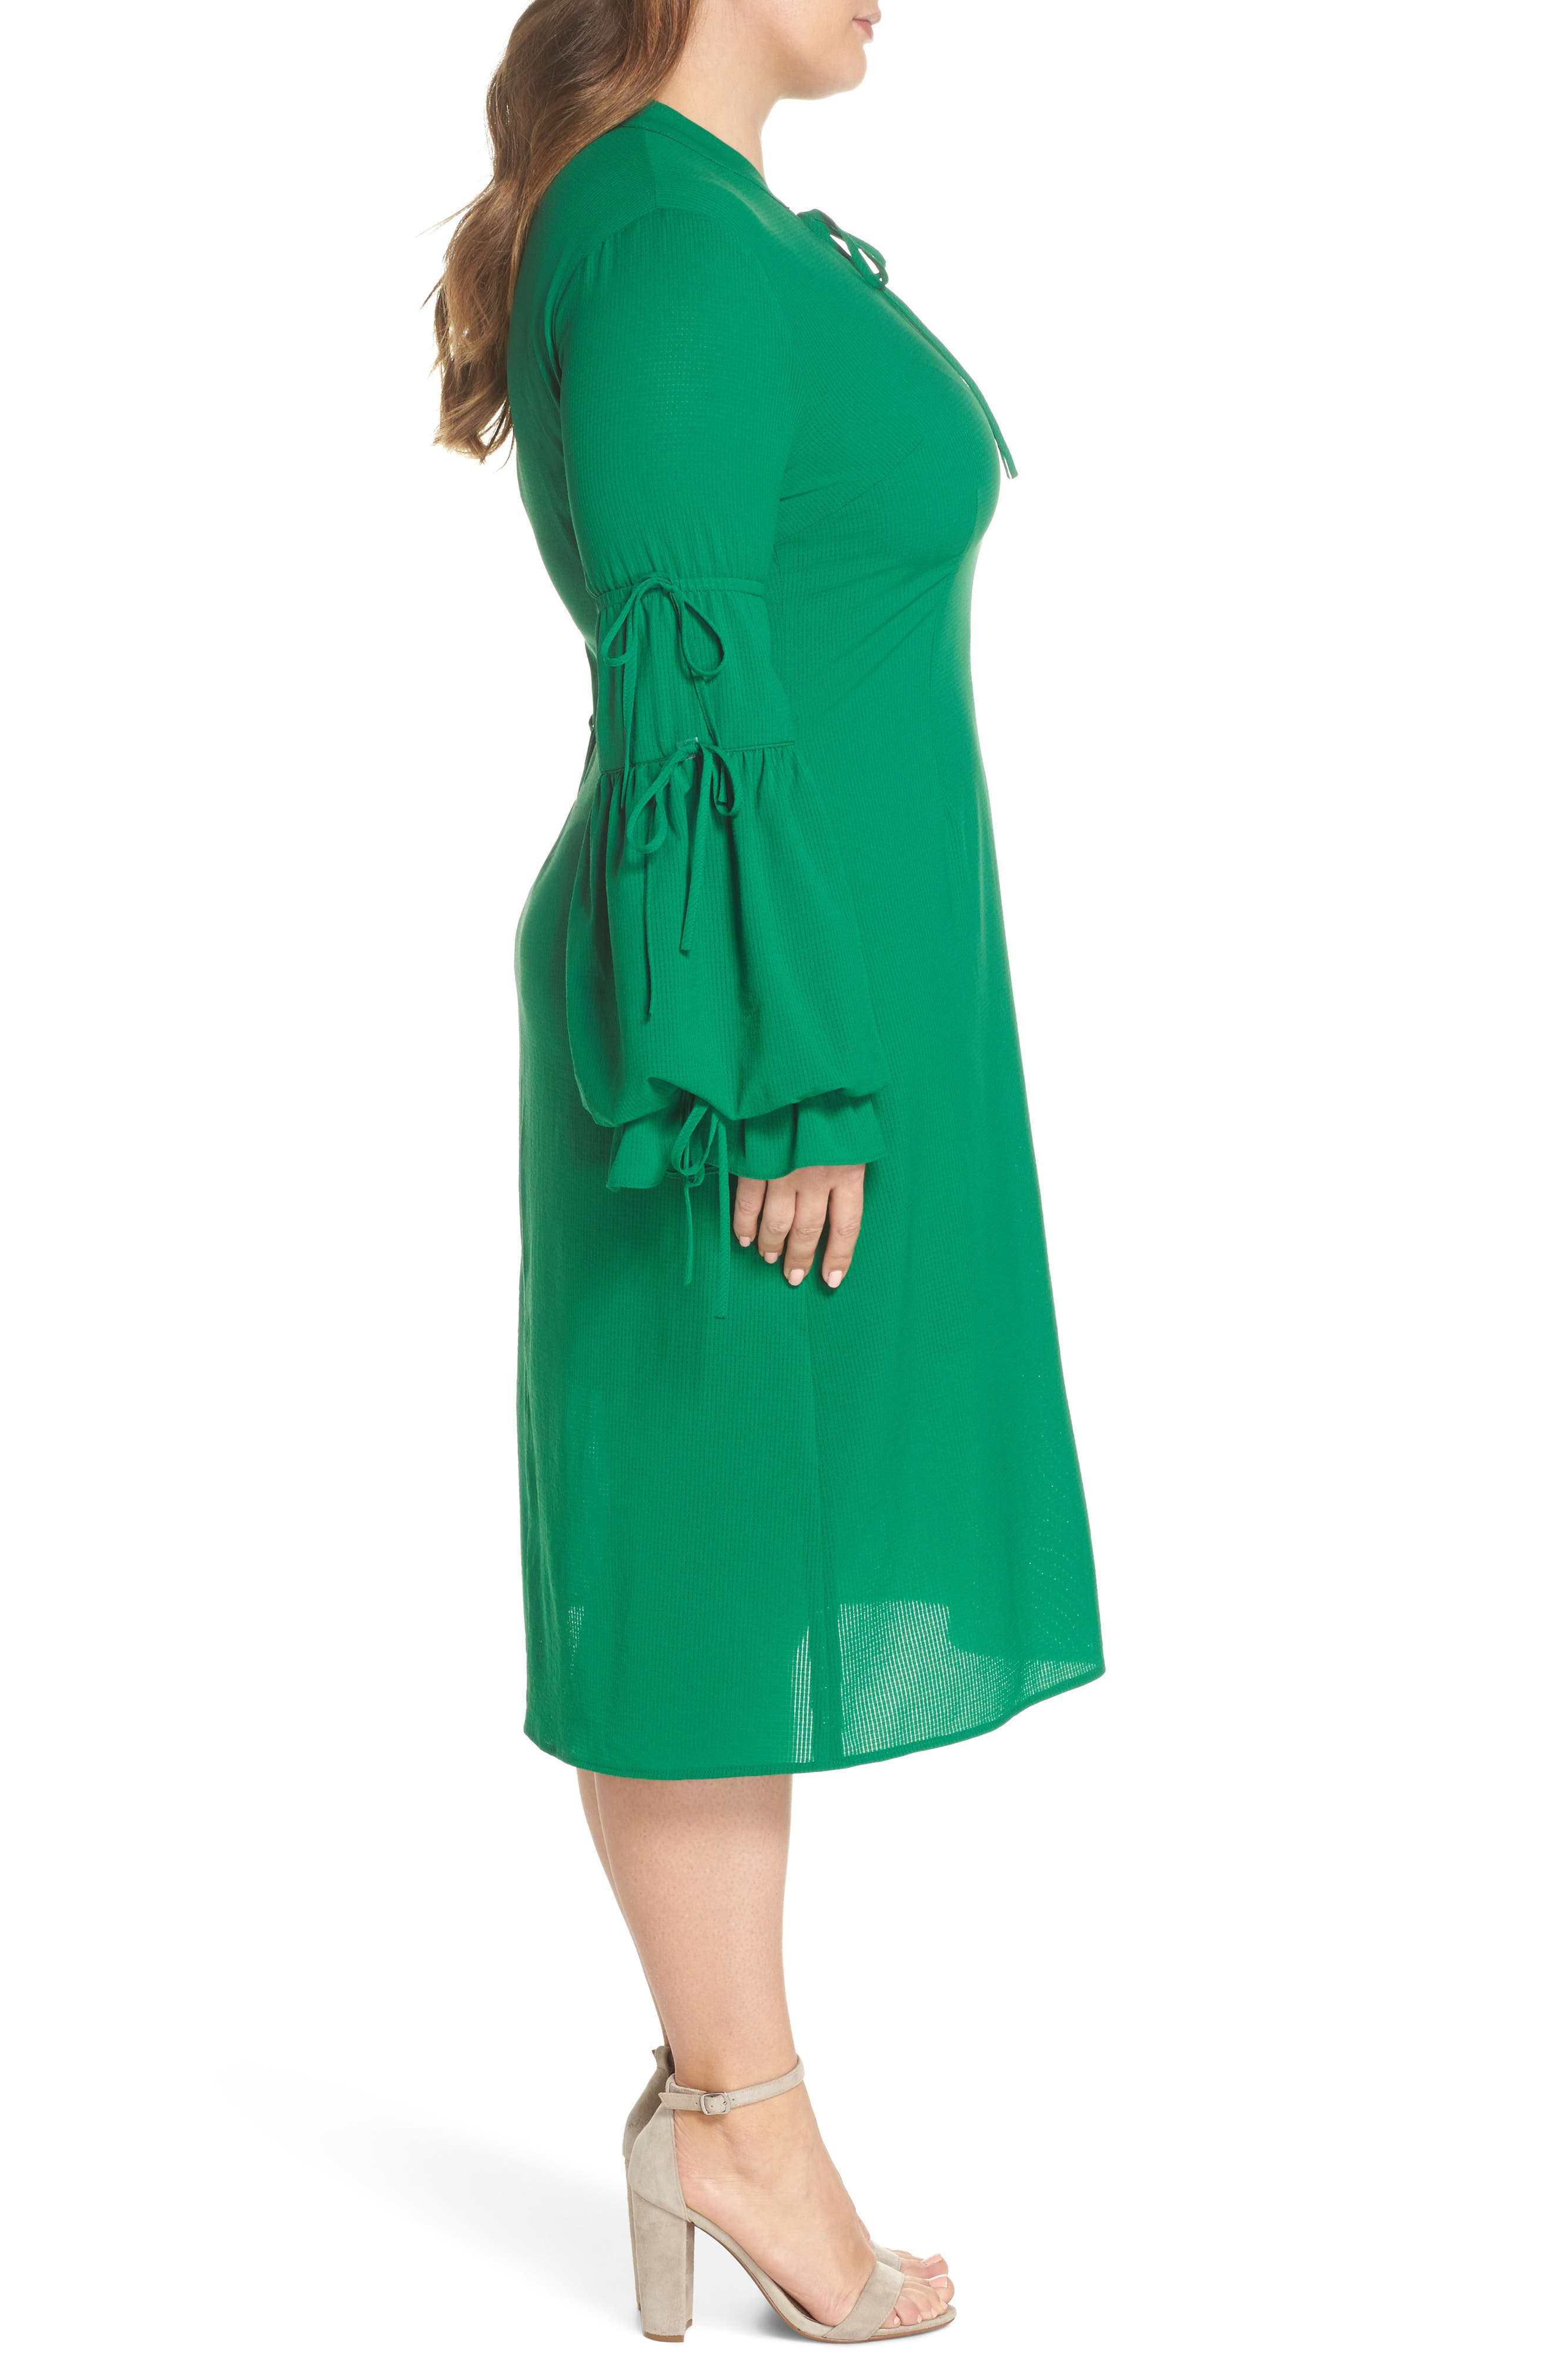 Leiko Antoinette Puff Sleeve Tea Dress,                             Alternate thumbnail 4, color,                             Green